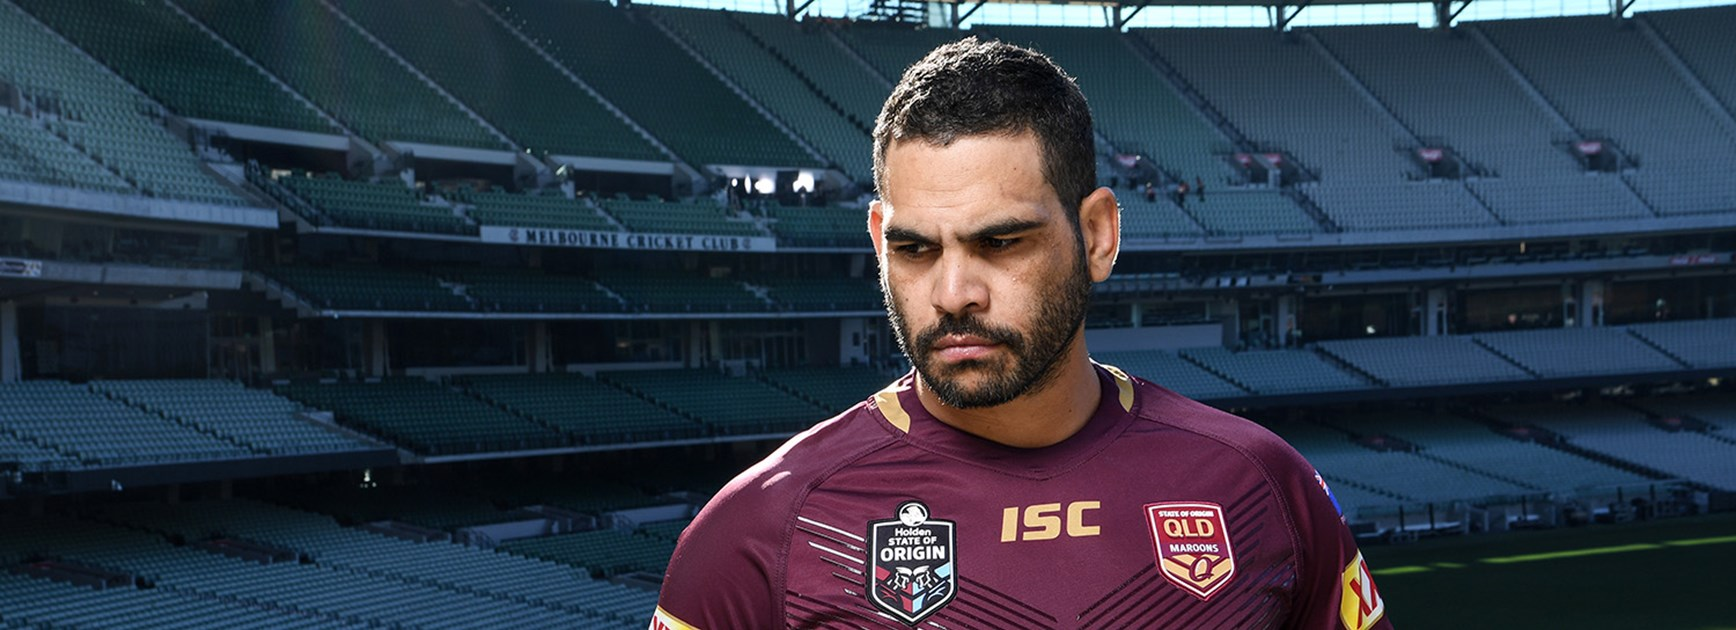 Inglis says new-look Maroons can emulate 2006 team